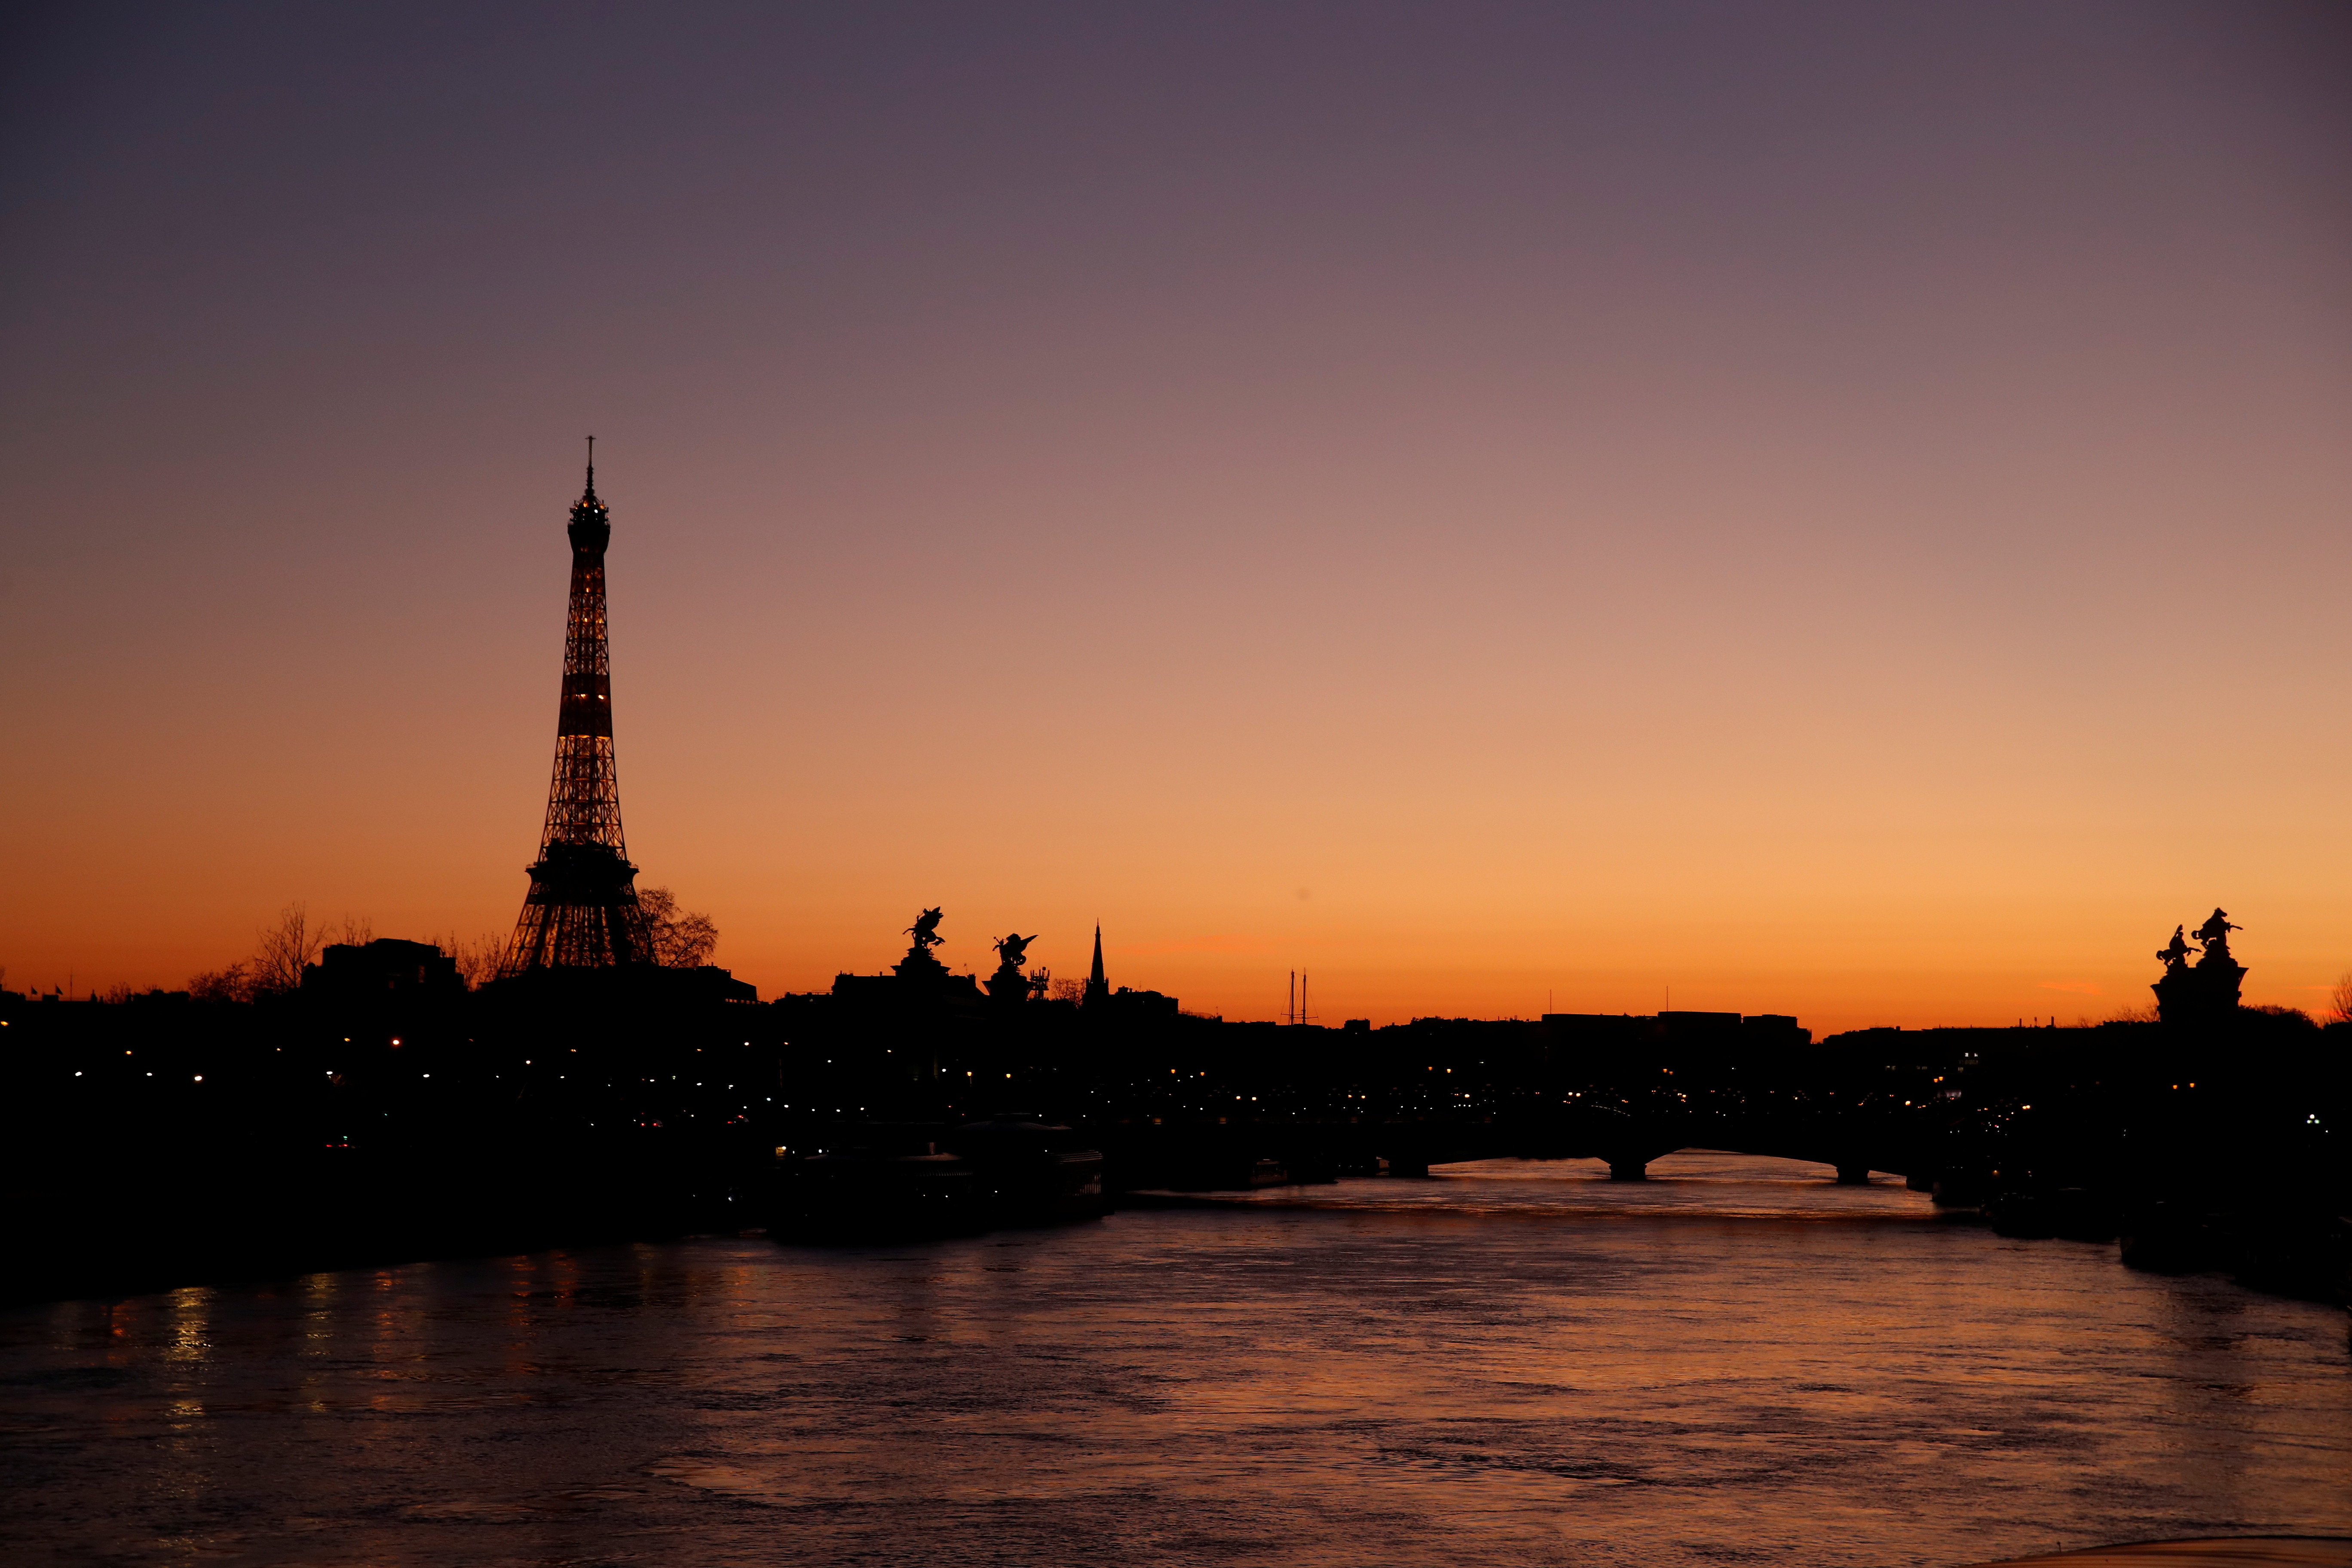 The Eiffel Tower is seen at sunset in Paris as a lockdown is imposed to slow the rate of the coronavirus disease (COVID-19) spread in France, March 24, 2020. REUTERS/Gonzalo Fuentes - RC2JQF99AL09